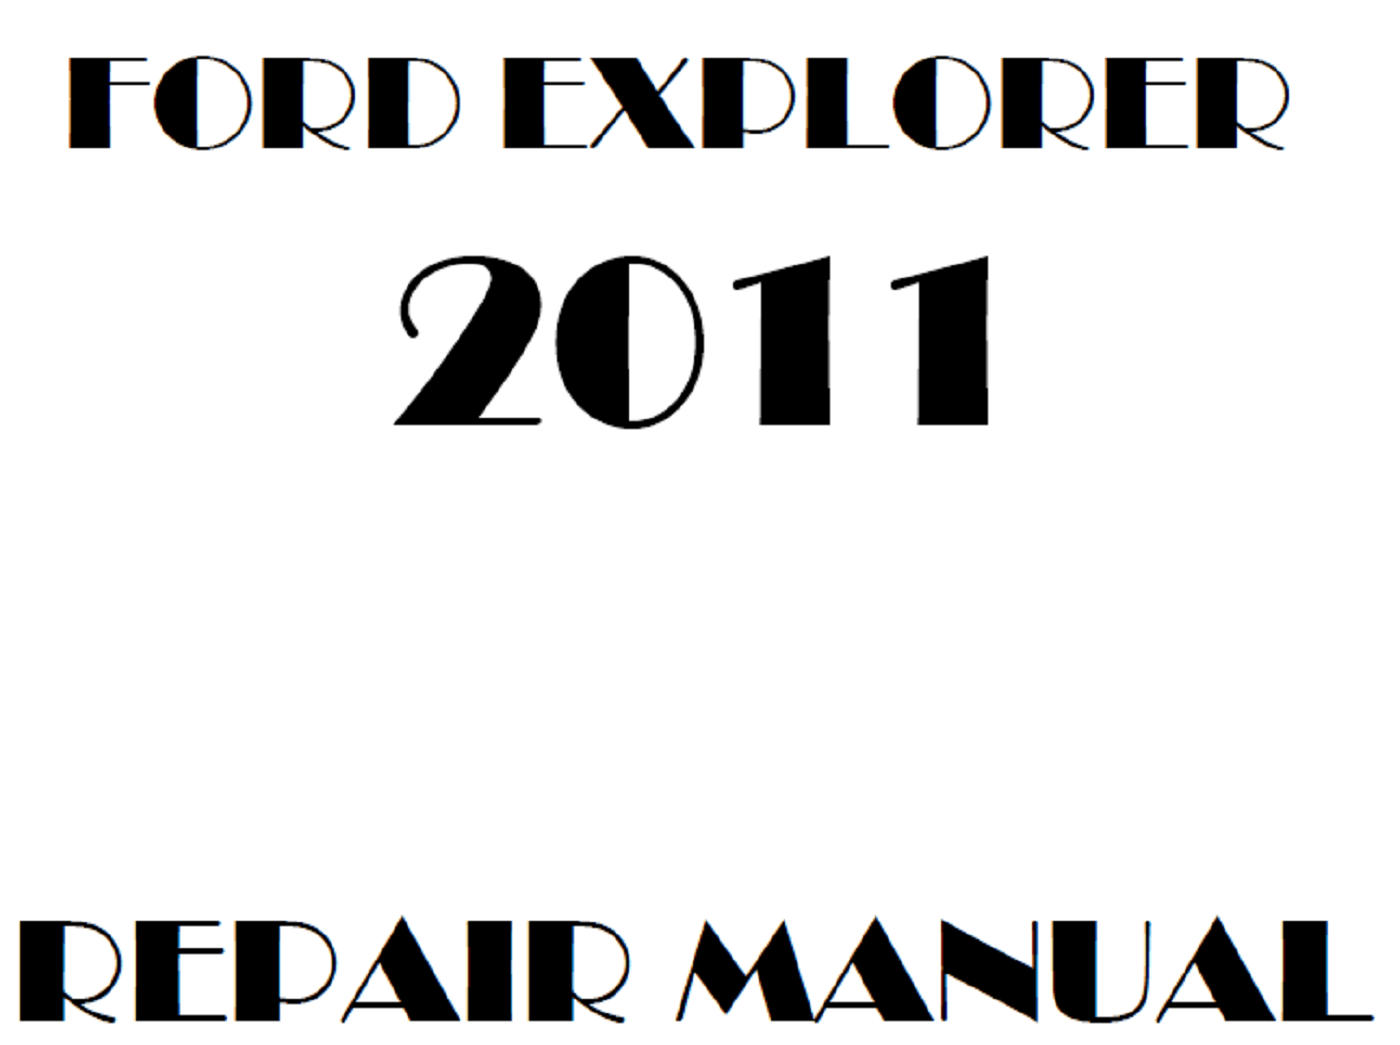 2011 Ford Explorer repair manual